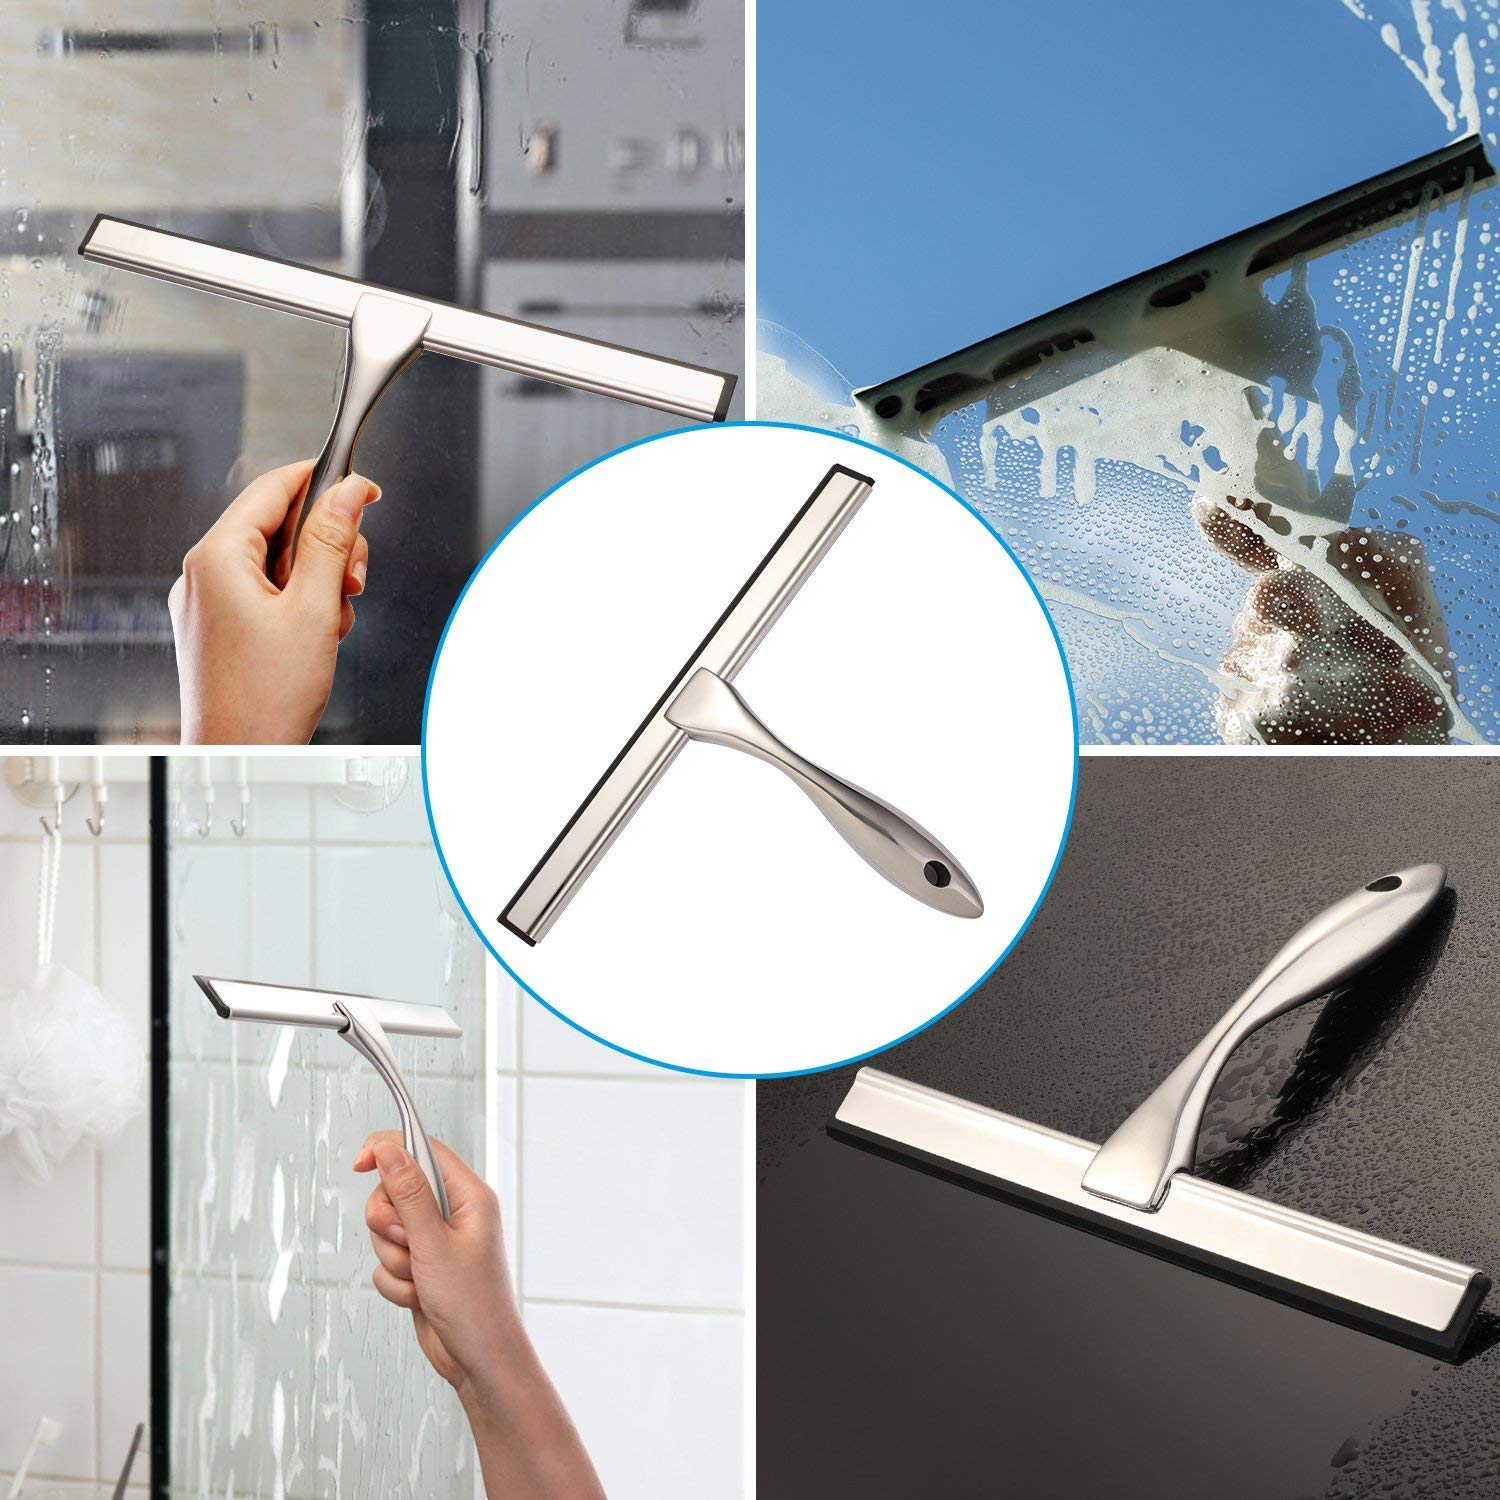 Hiware All-Purpose Shower Squeegee for Shower Doors, Bathroom, Window and Car Glass - Stainless Steel, 14 Inches by Hiware (Image #7)